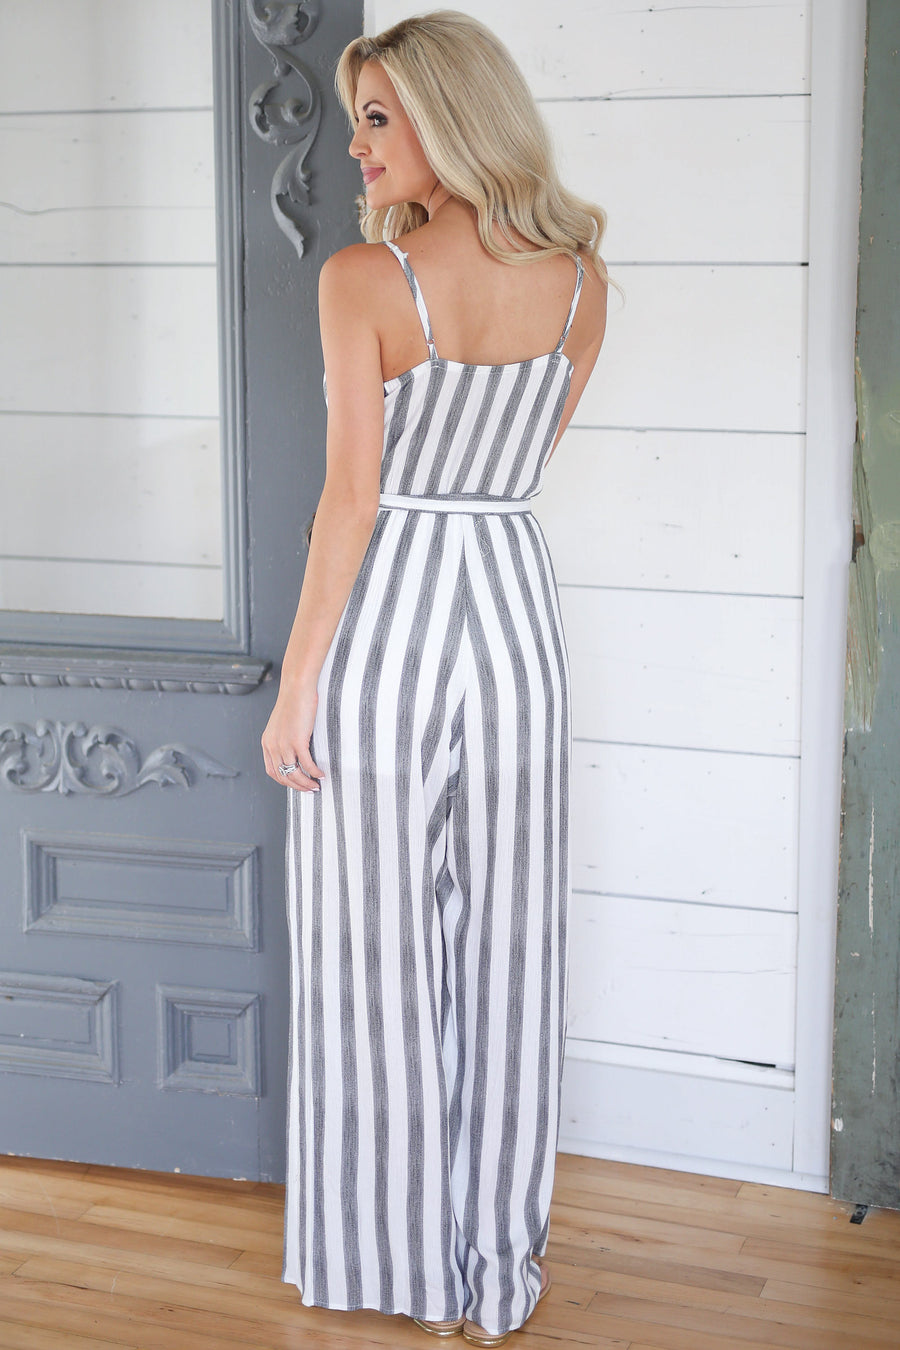 Santa Monica Jumpsuit - Black/White stripe surplice jumpsuit, Closet Candy Boutique 1